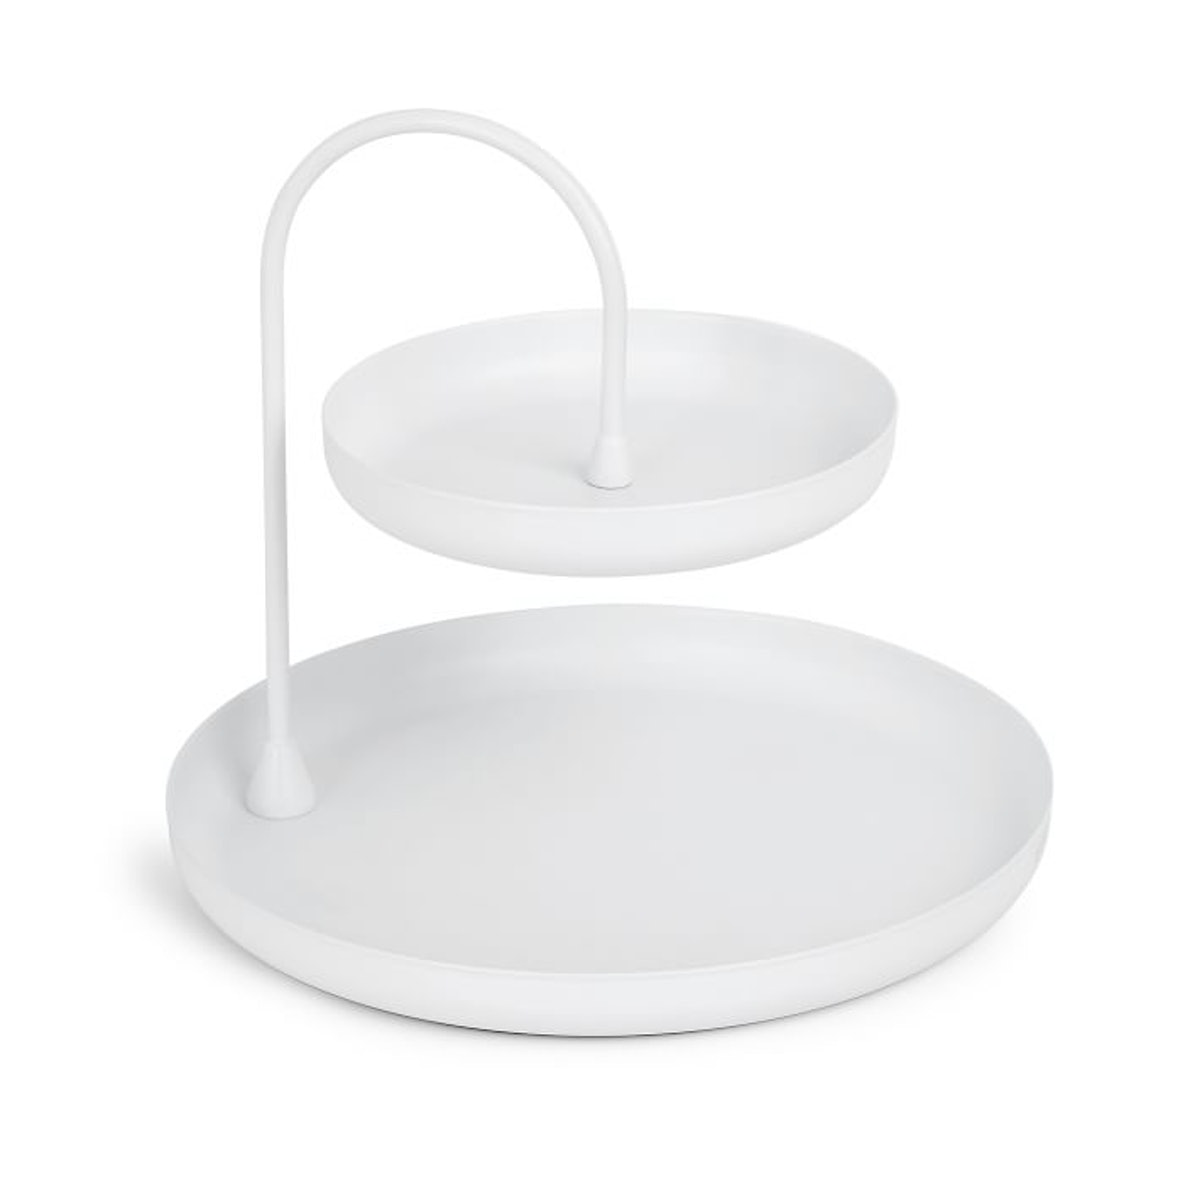 Poise Two Tiered Tray, White